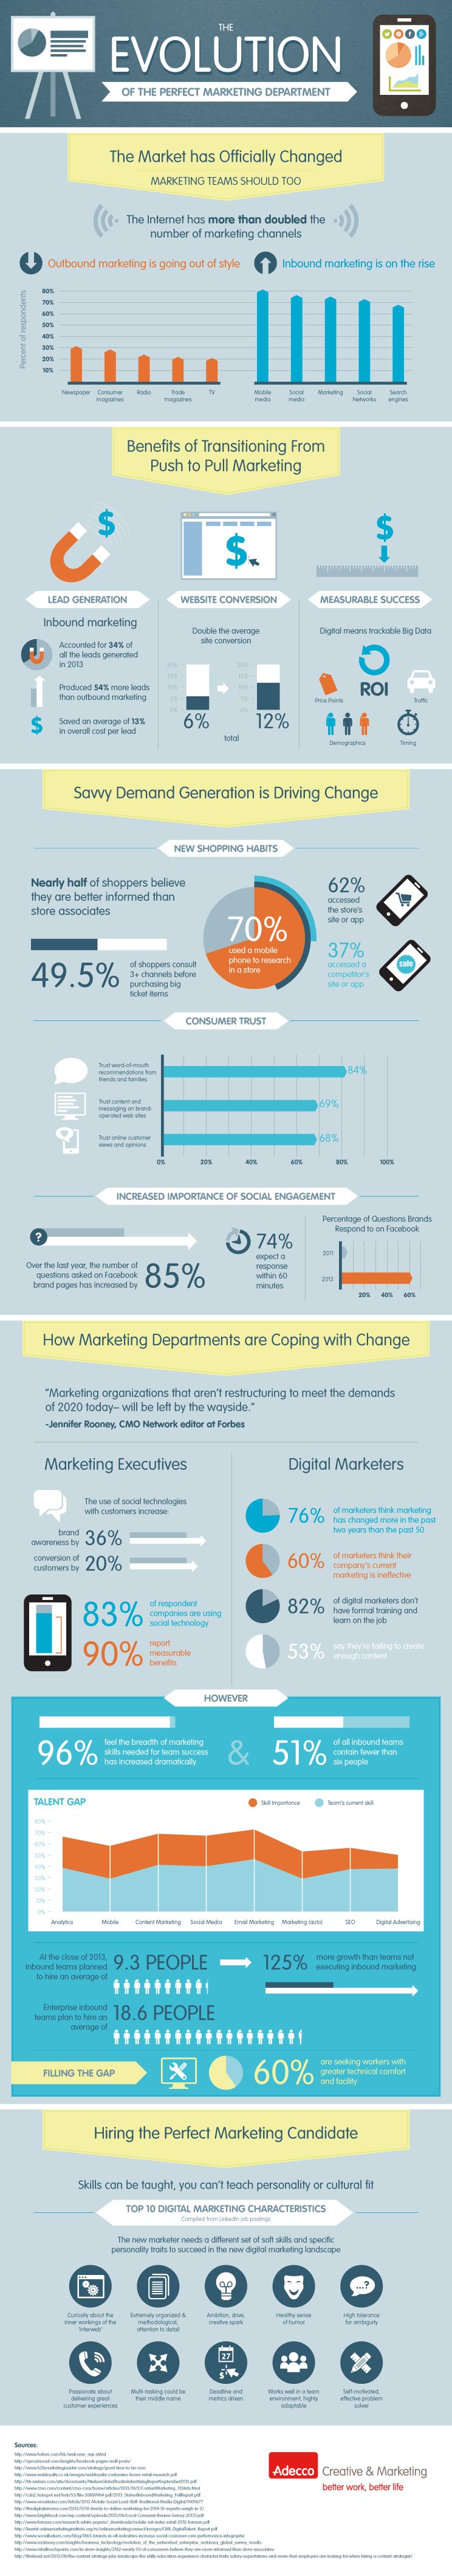 evolution-of-marketing-infographic